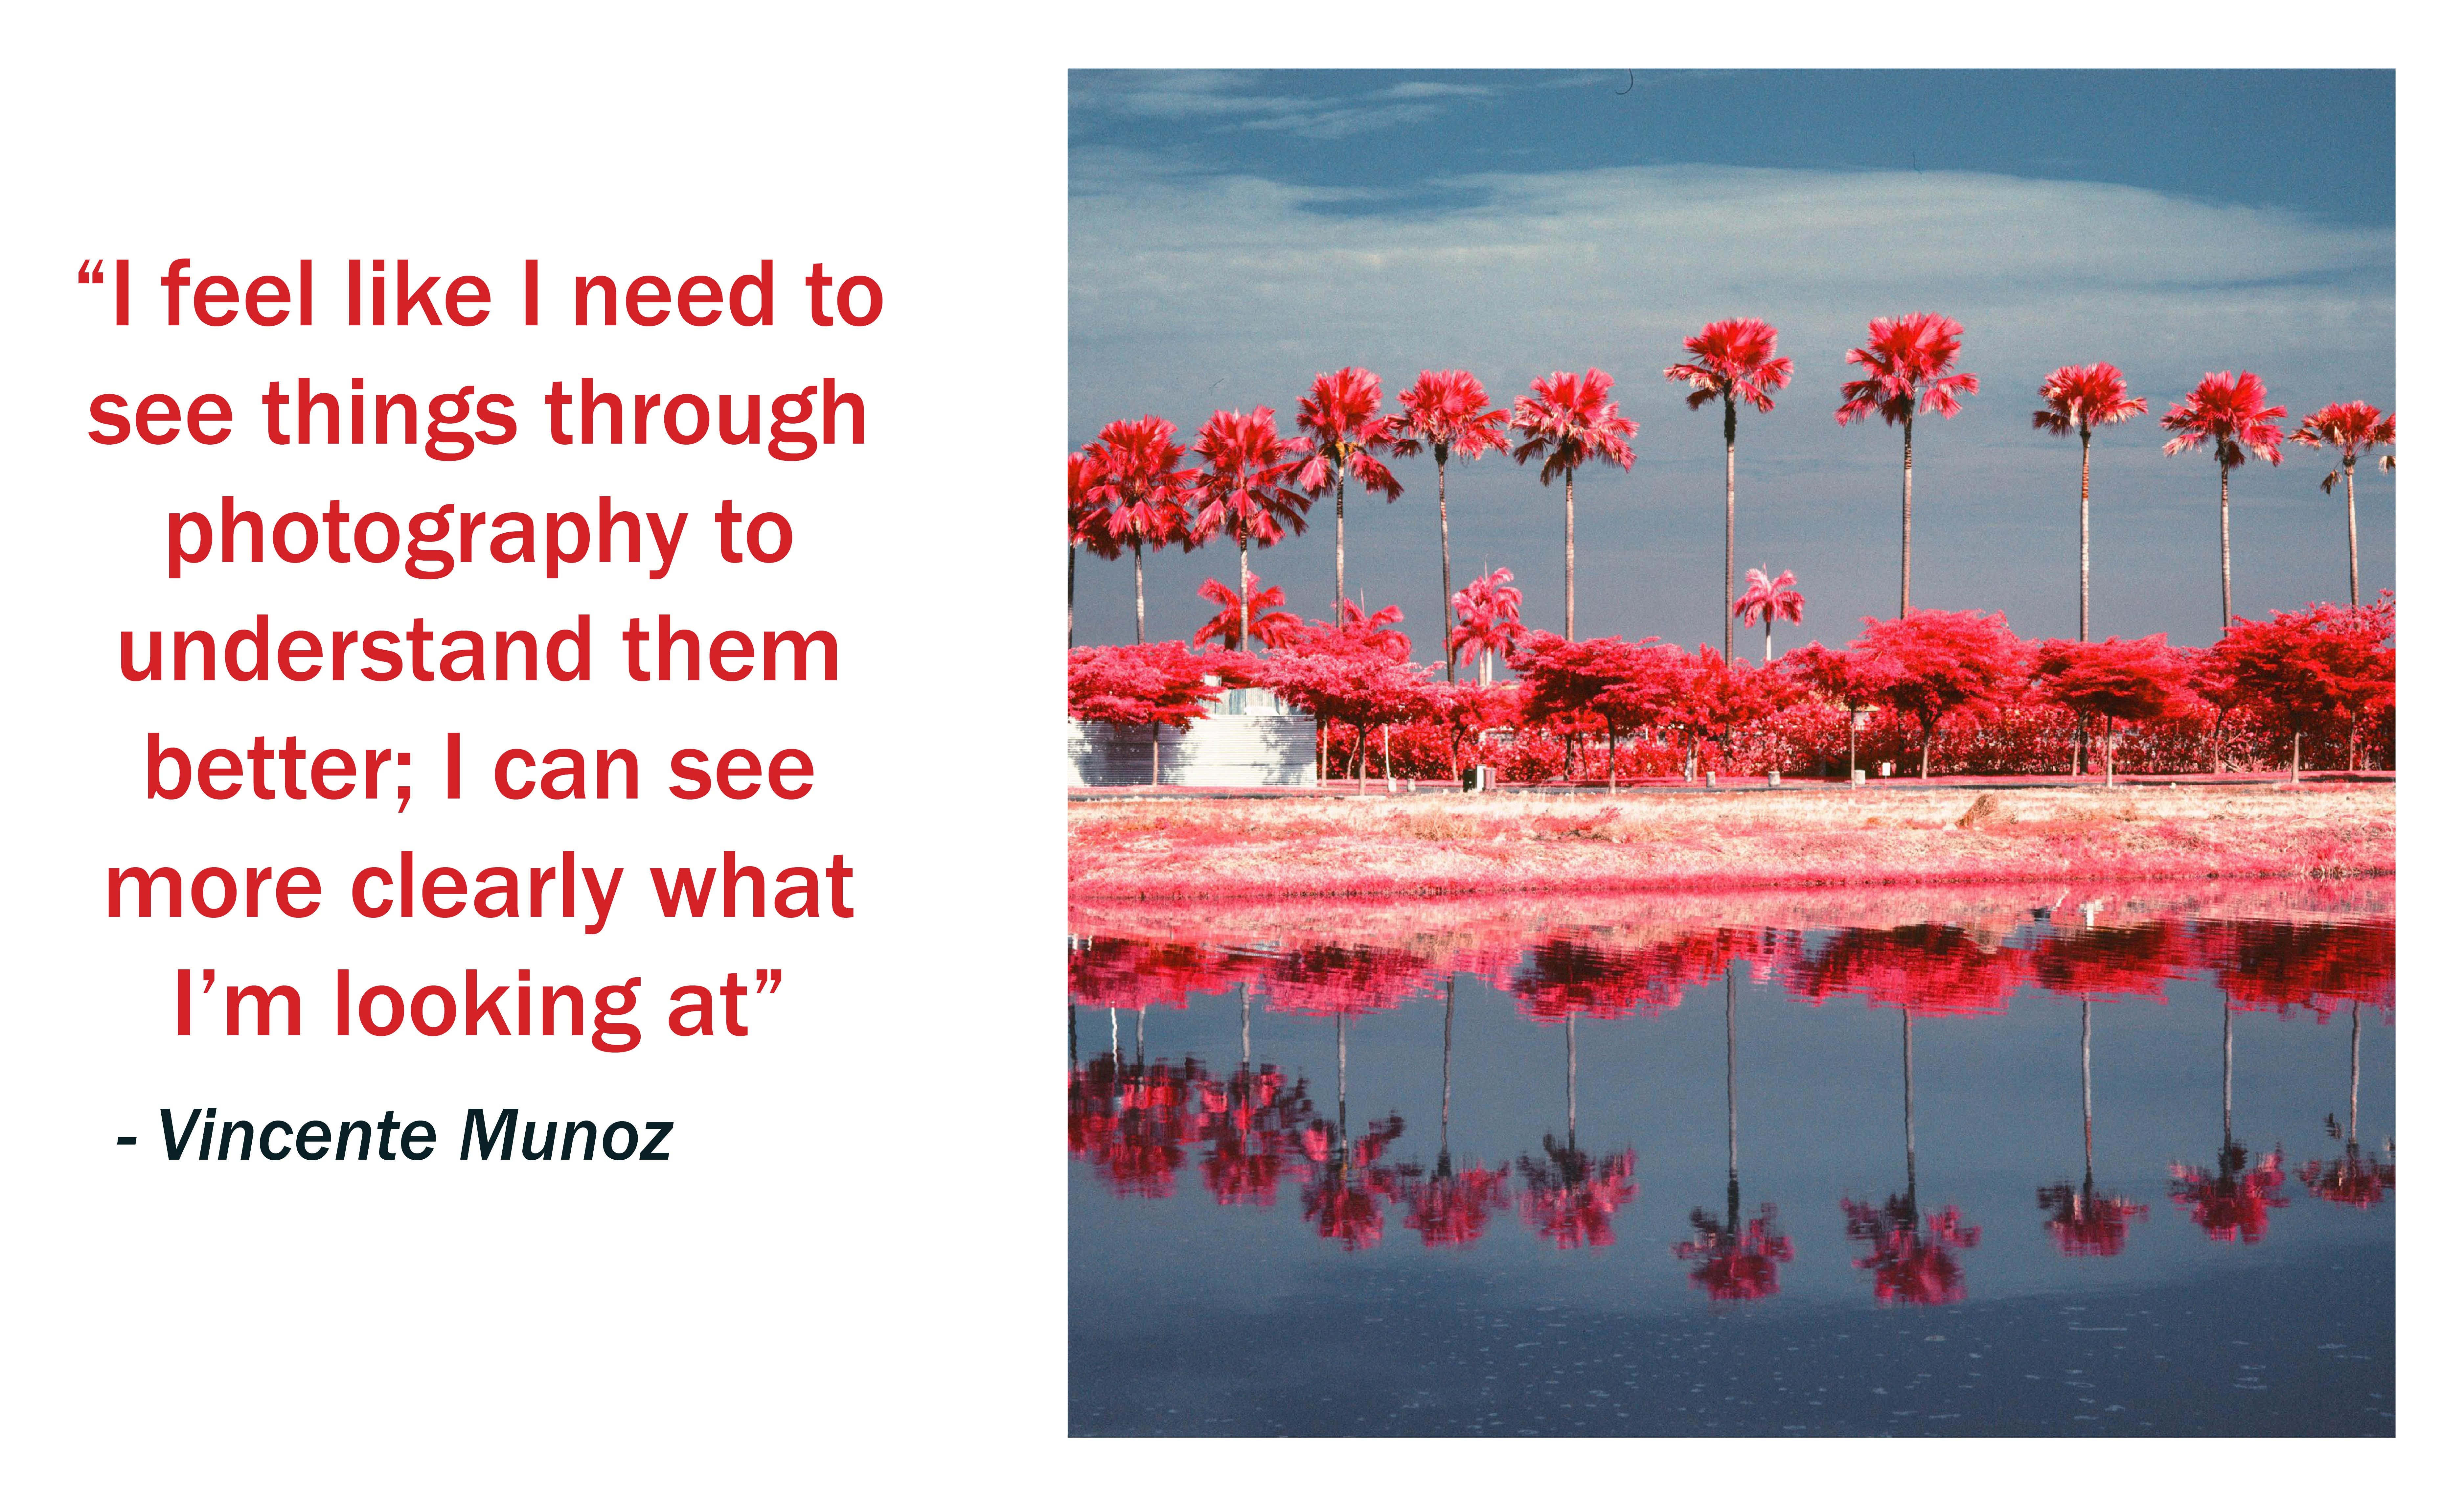 Vicente-Munoz-Infrared-Photography-Quote